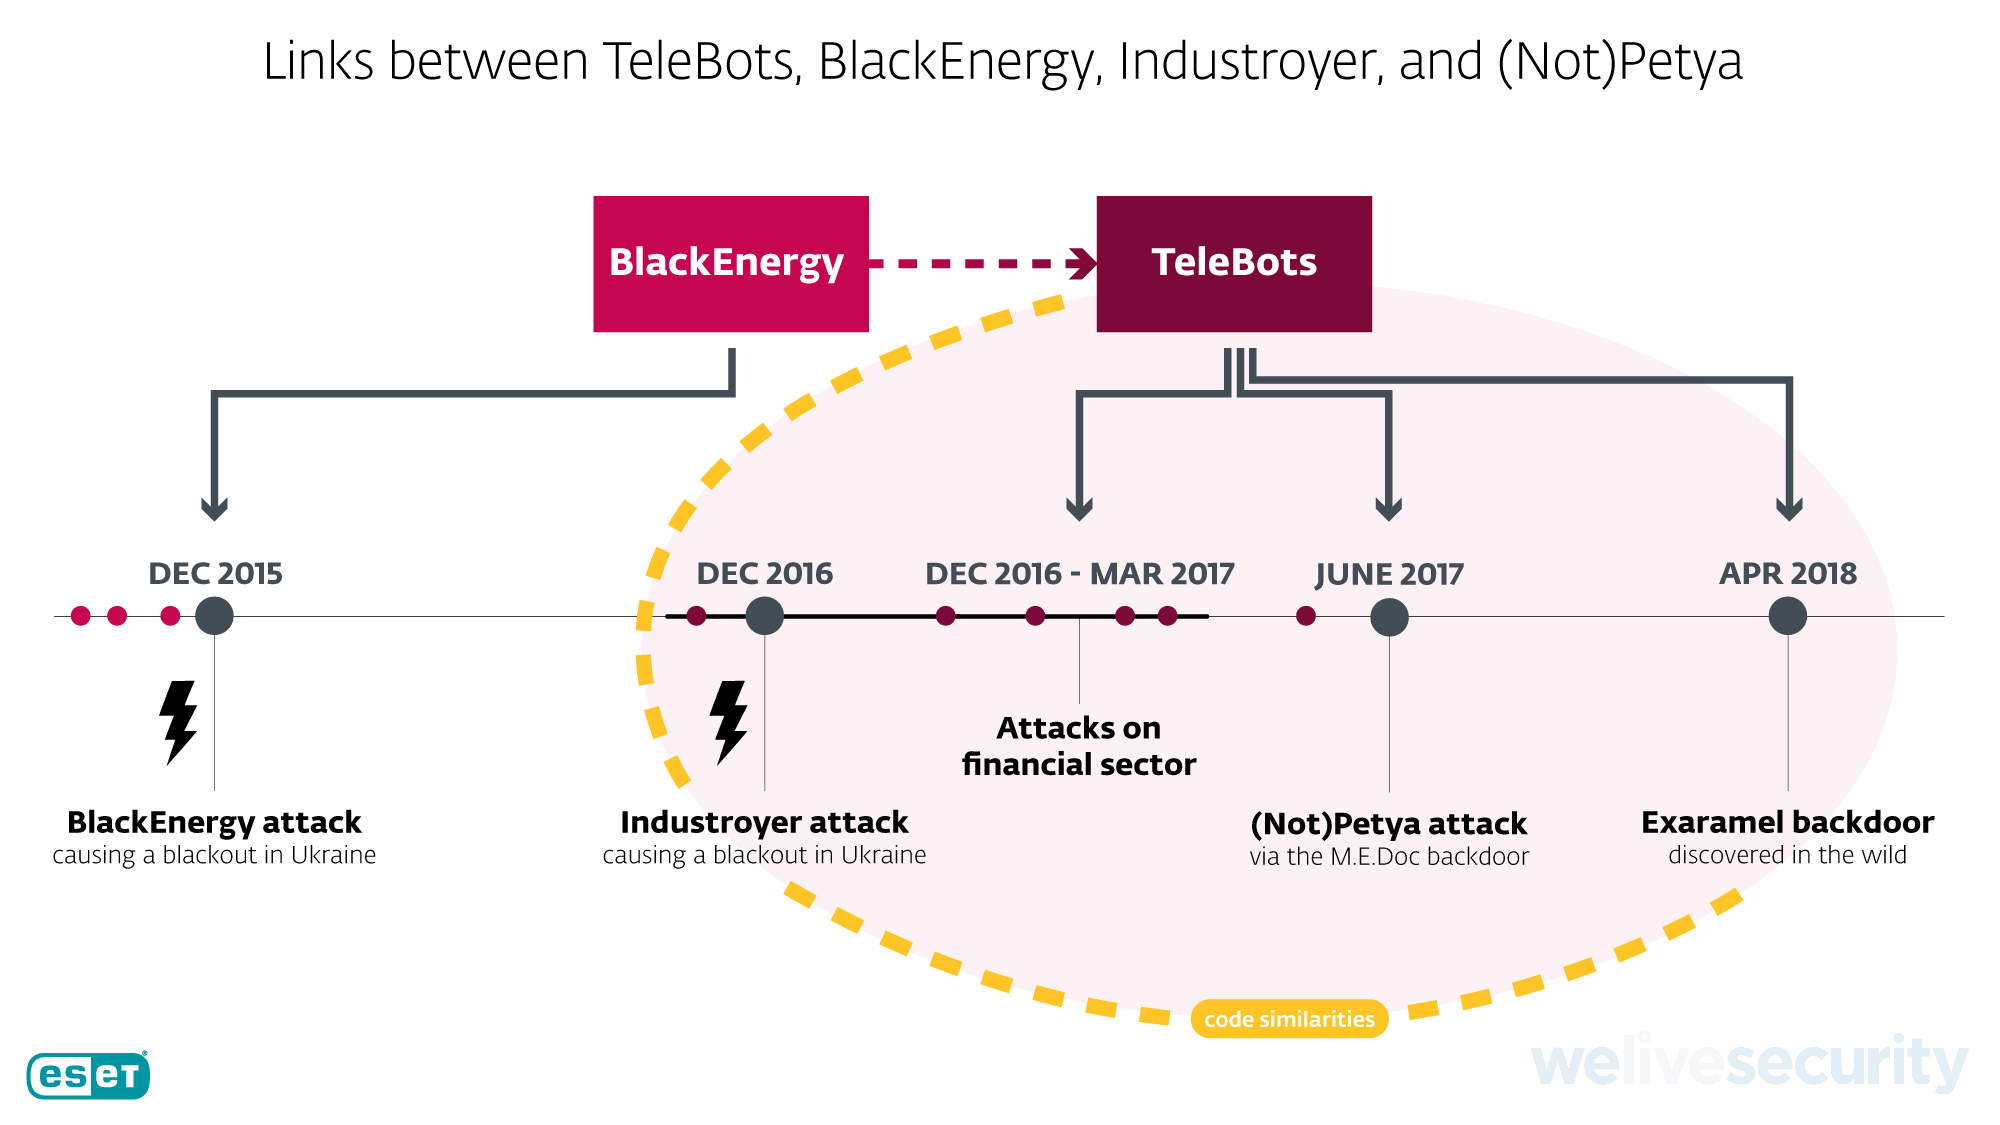 - Telebots Industroyer Exaramel FINAL 2 - New TeleBots backdoor links Industroyer to NotPetya for first time